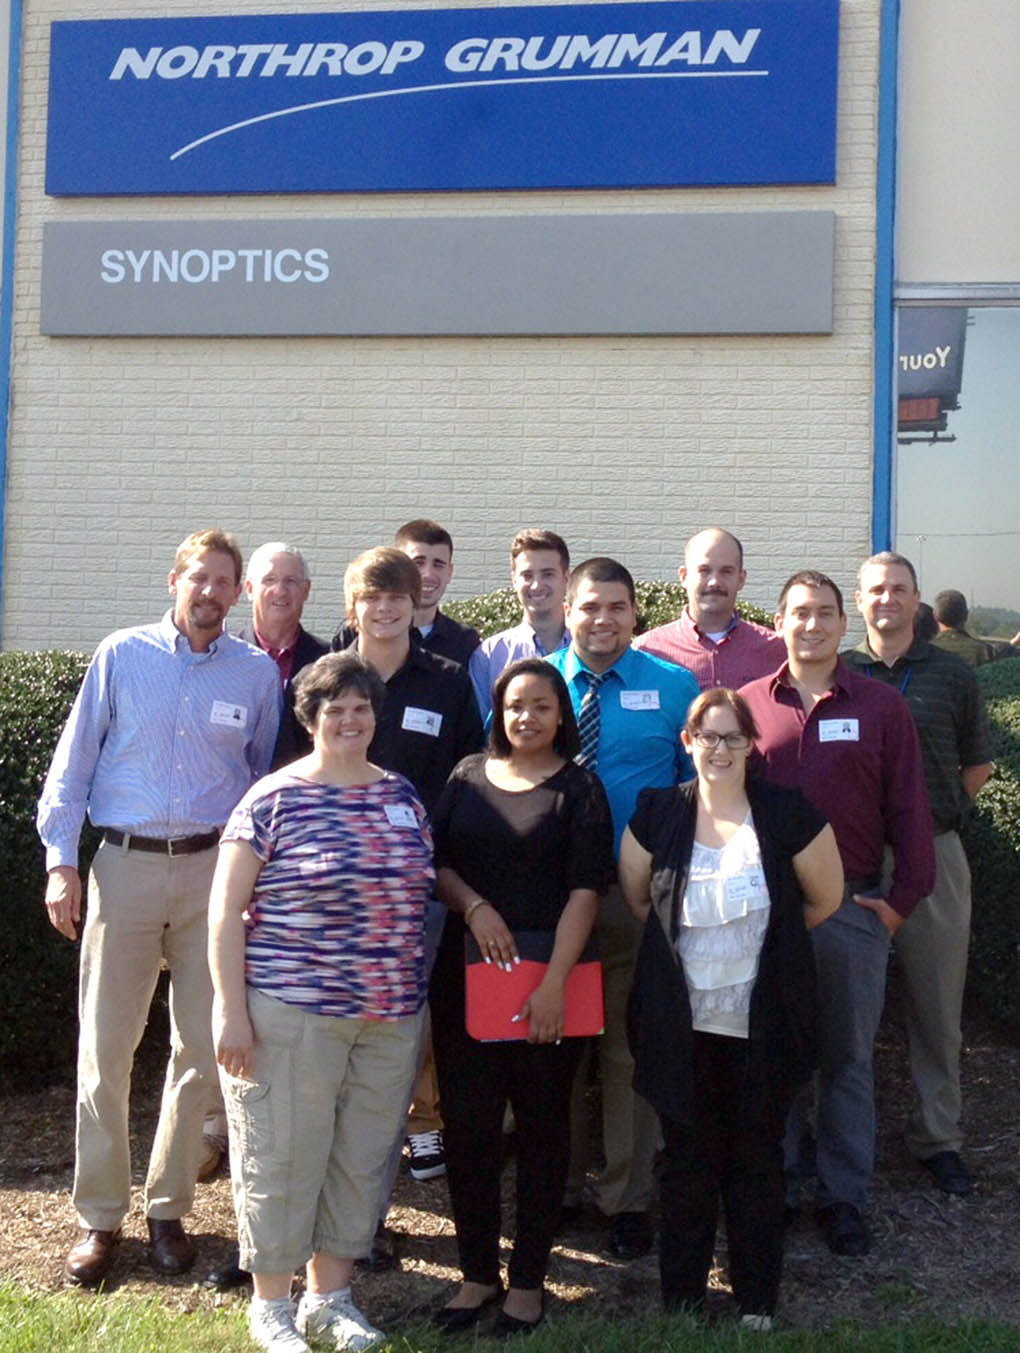 Click to enlarge,  Second-year students in the Laser and Photonics Technology program at Central Carolina Community College's Harnett Campus experienced first-hand learning of photonics applications on a recent field trip to Charlotte. Pictured are, left to right: front row, Shelly Parker, Andreina McIver, and Kaitlyn Camp; center row, Chris Baggett, Colt Dudley, Carlos Salas Moreno, and Al Delong; back row, laser program lead instructor Gary Beasley, Chris Loehr, Alex Voytik, Jeremy Knoll, and Dr. Kevin Stevens of Synoptics.